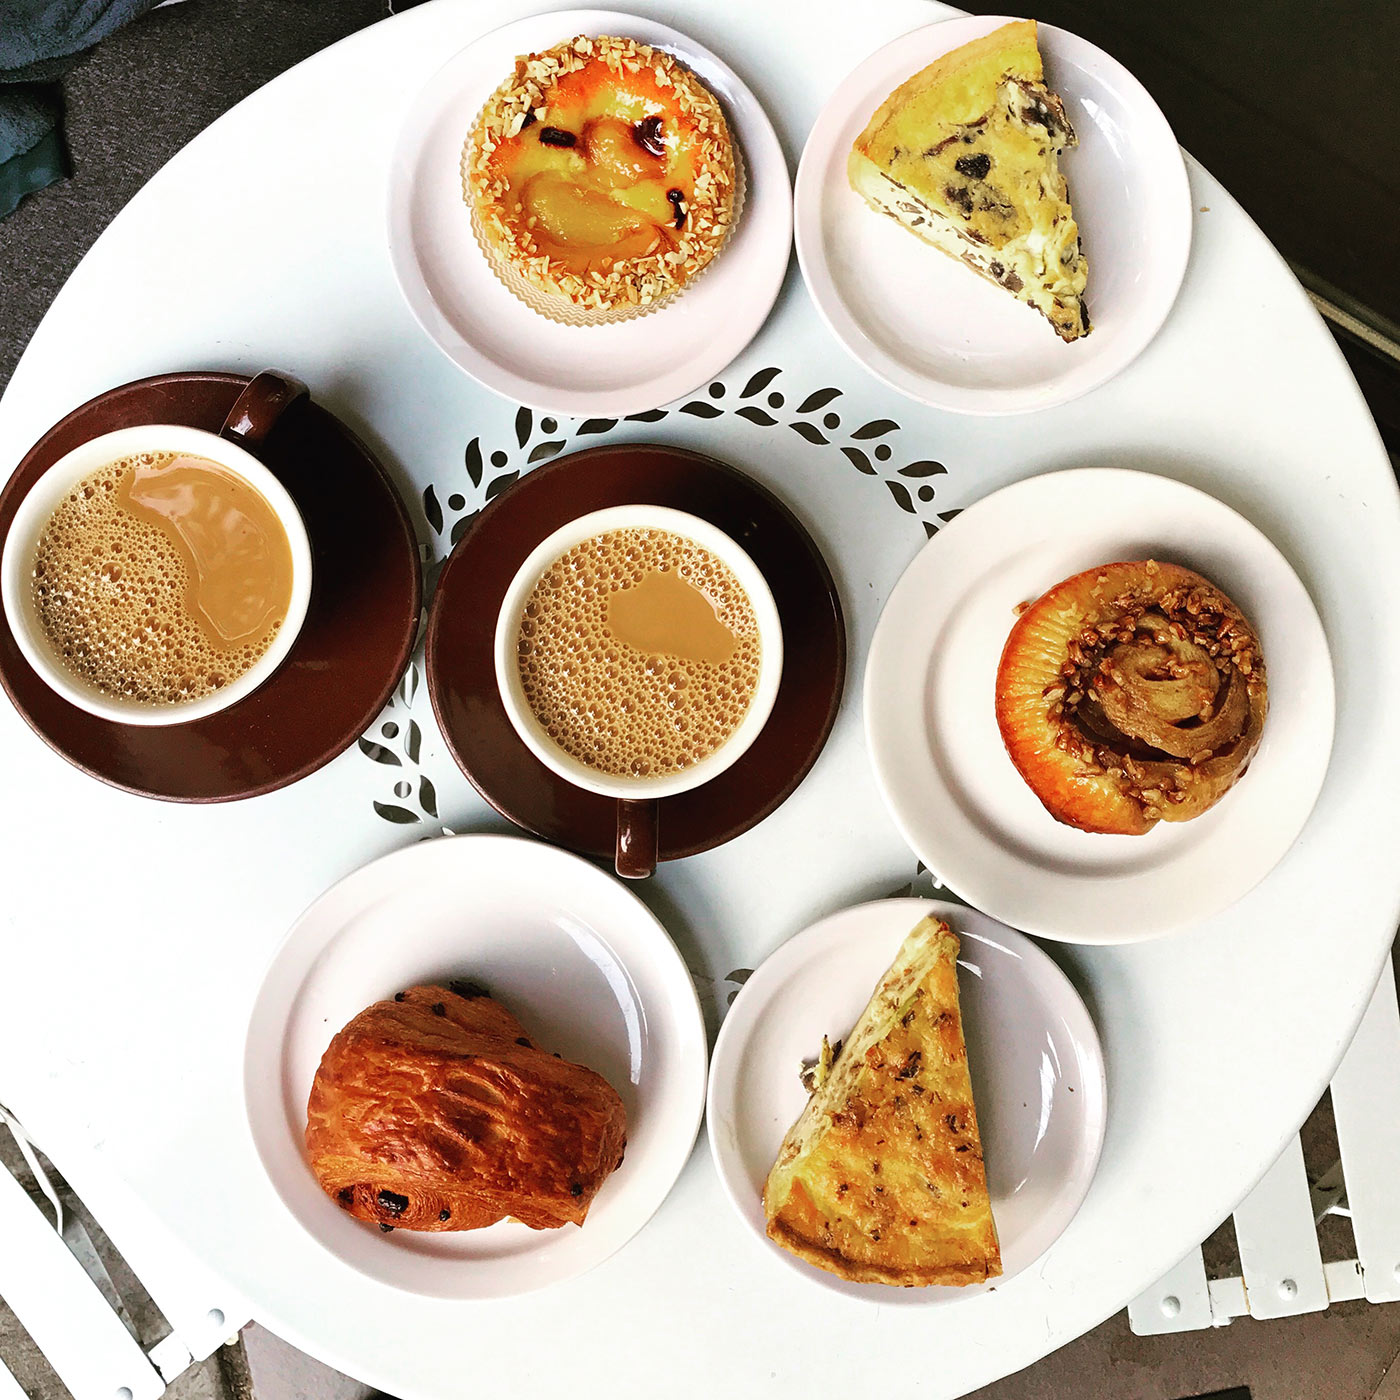 Our final breakfast in Seattle was at Bakery Nouveau in Capital Hill.